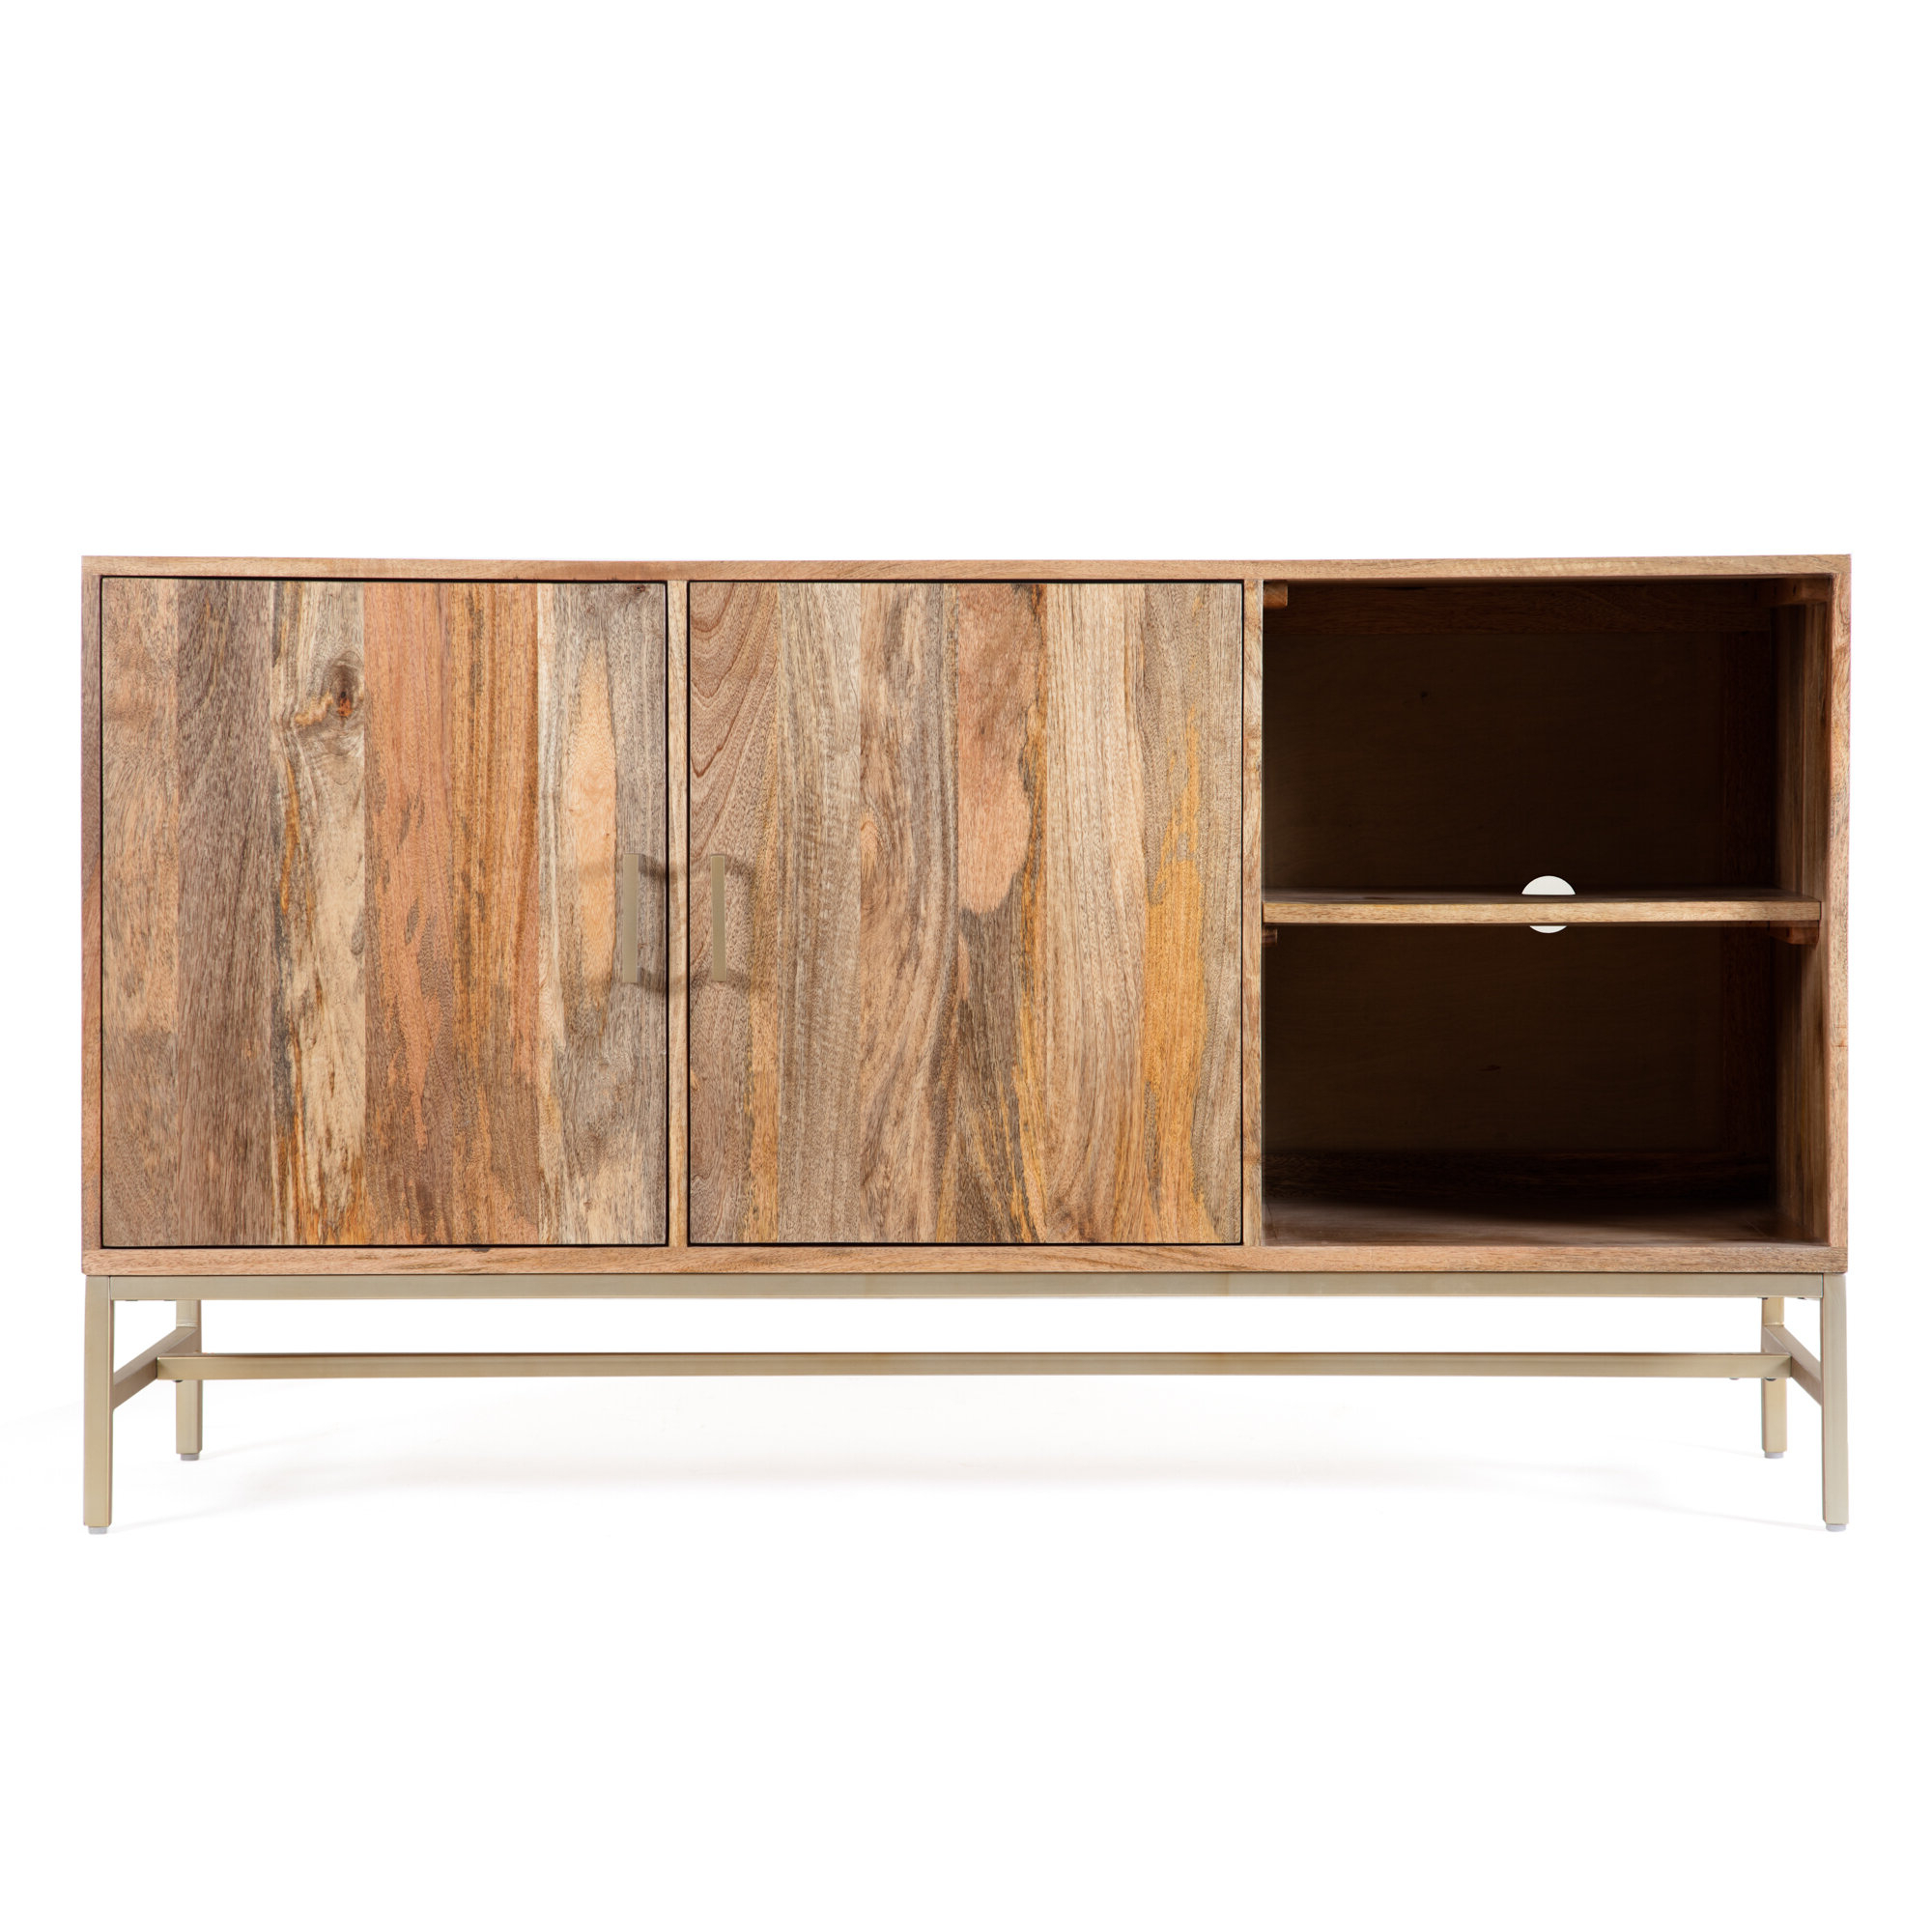 Modern & Contemporary Media Credenza | Allmodern Intended For Lainey Credenzas (View 14 of 20)